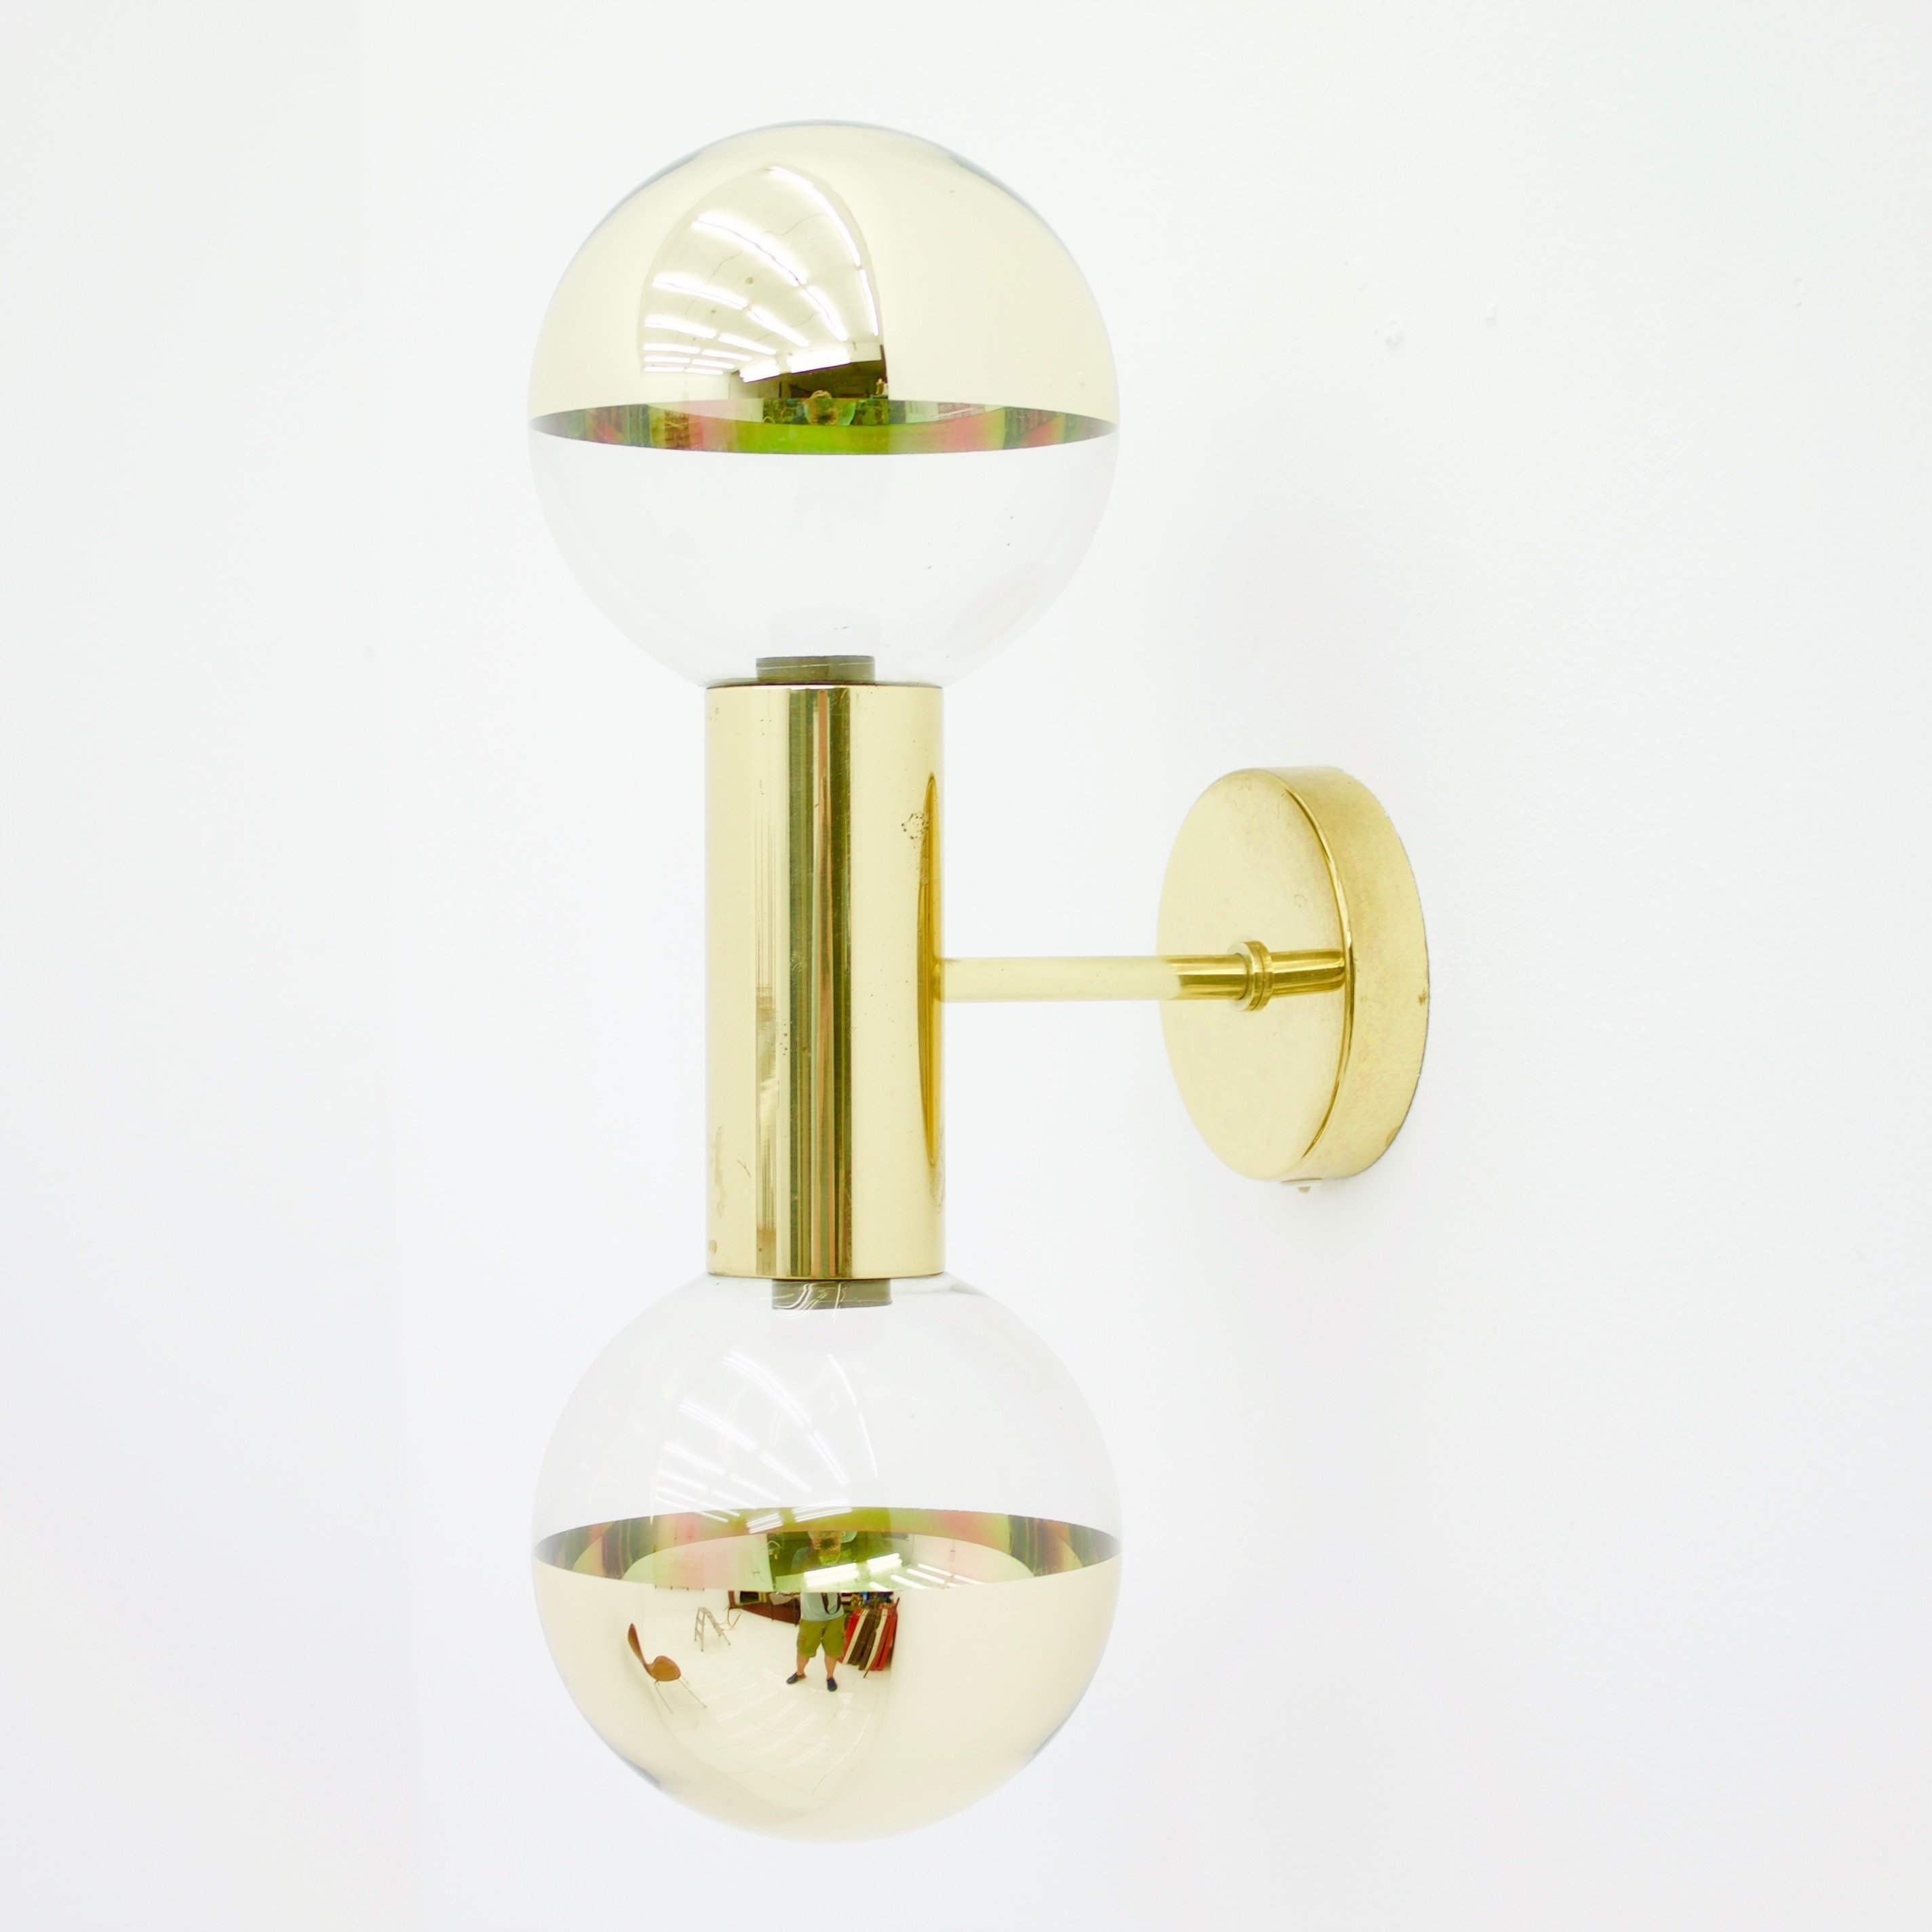 Wall Lamp from the sixties by Motoko Ishii for Staff #64958